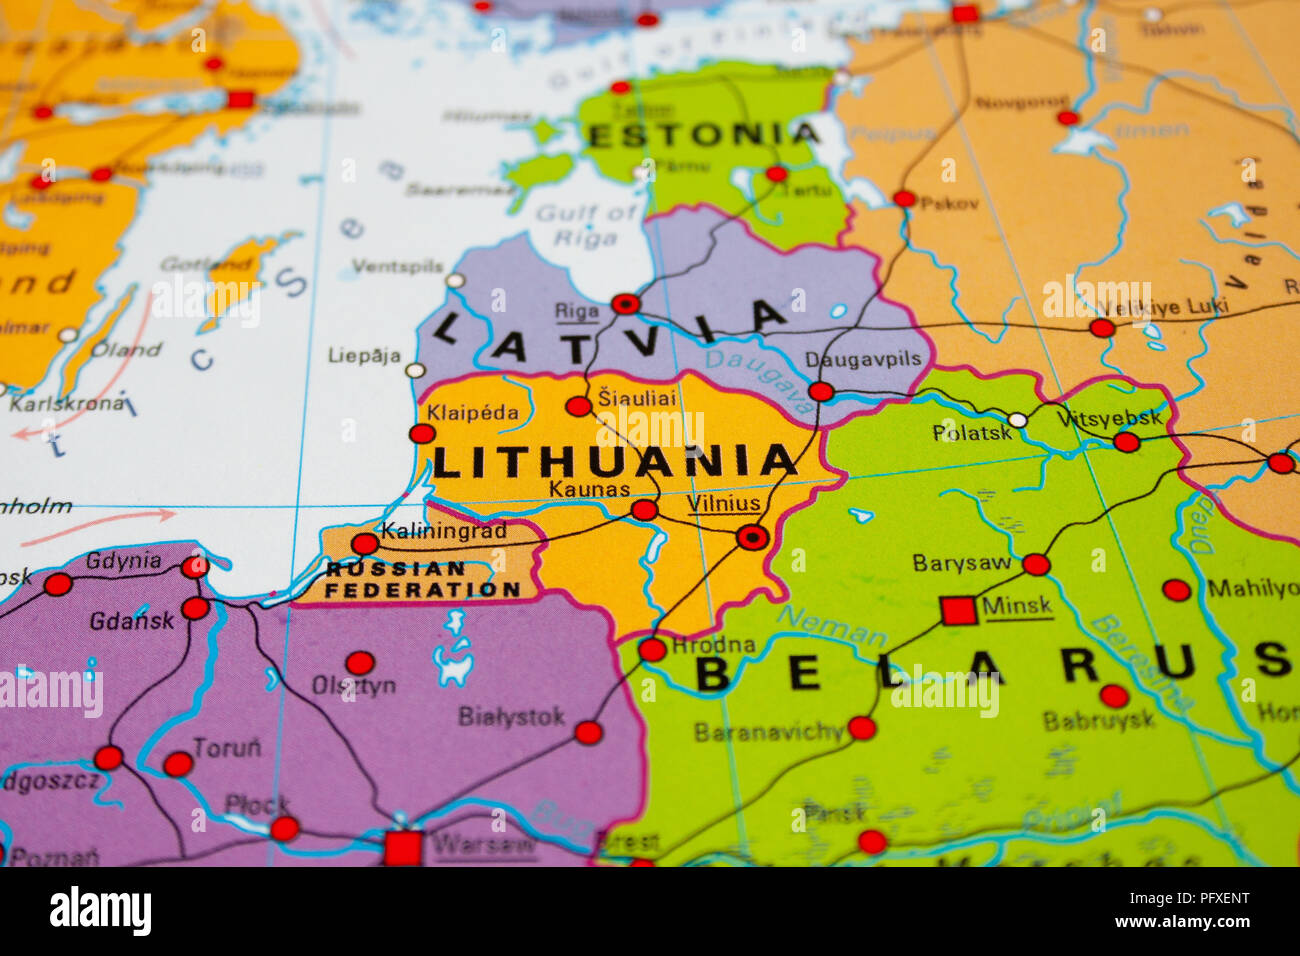 Map of Lithuania, Baltic states Stock Photo: 216326596 - Alamy